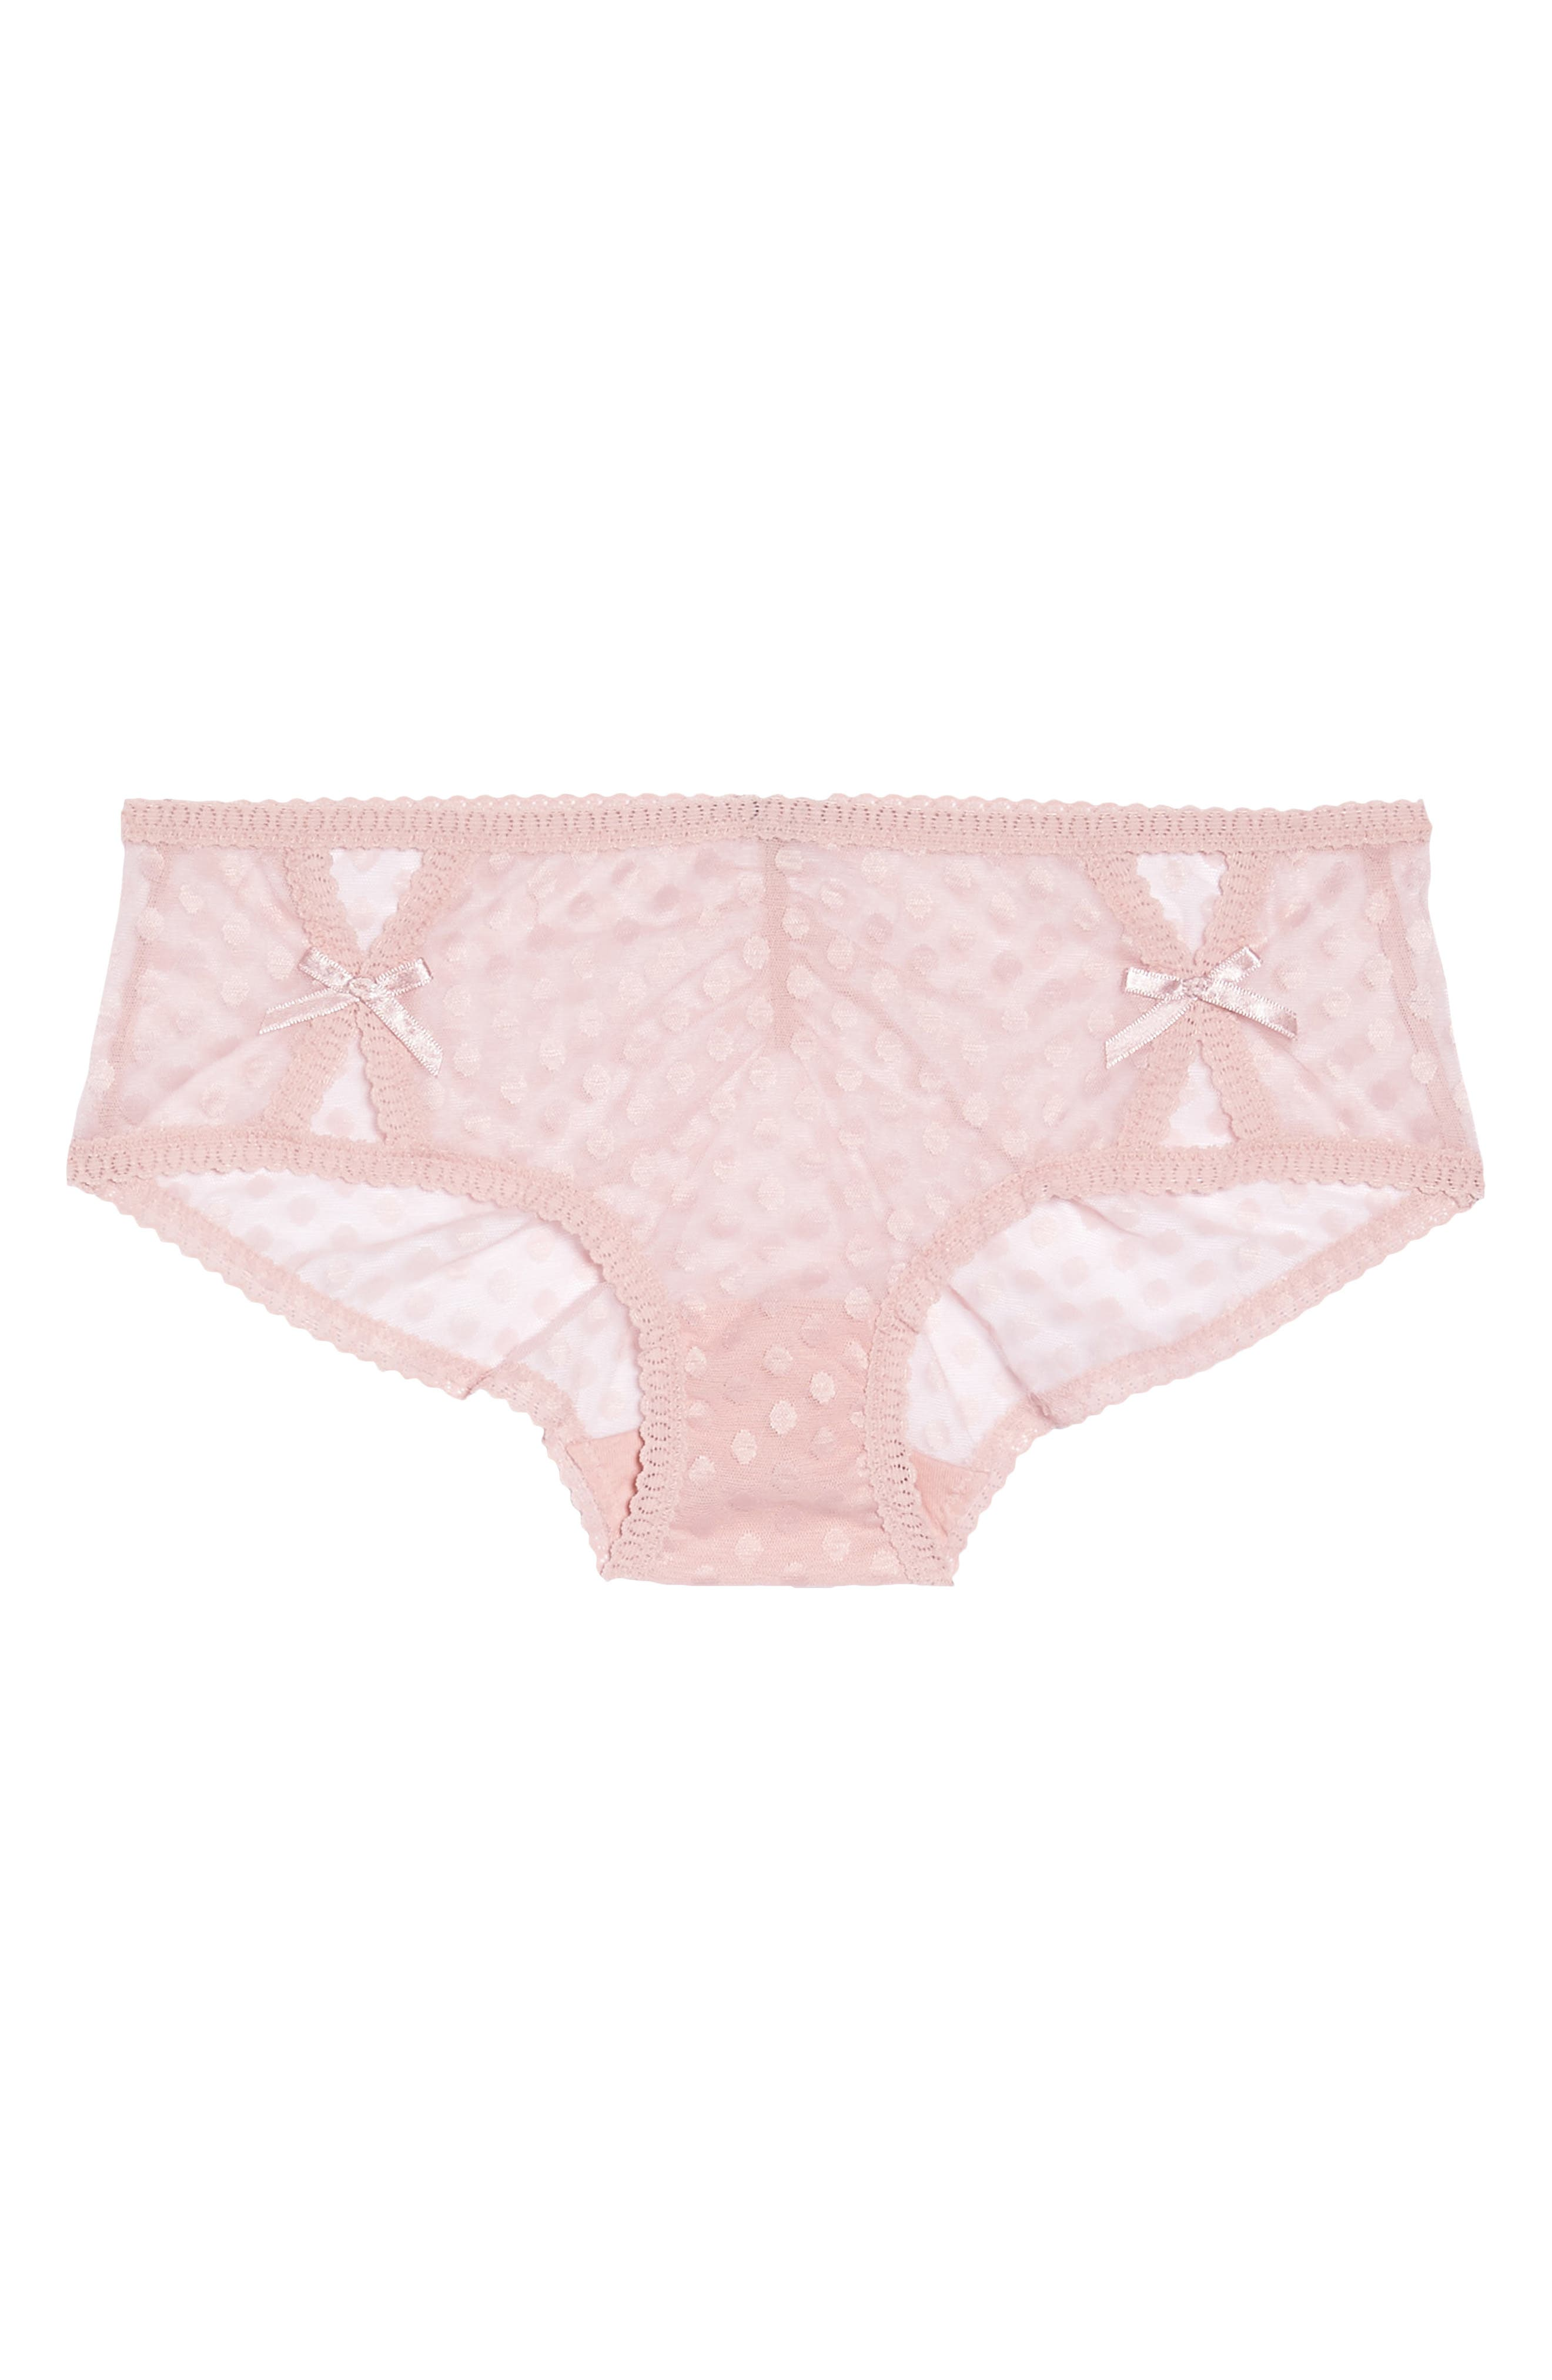 Alternate Image 1 Selected - Sam Edelman Peekaboo Hipster Briefs (3 for $33)